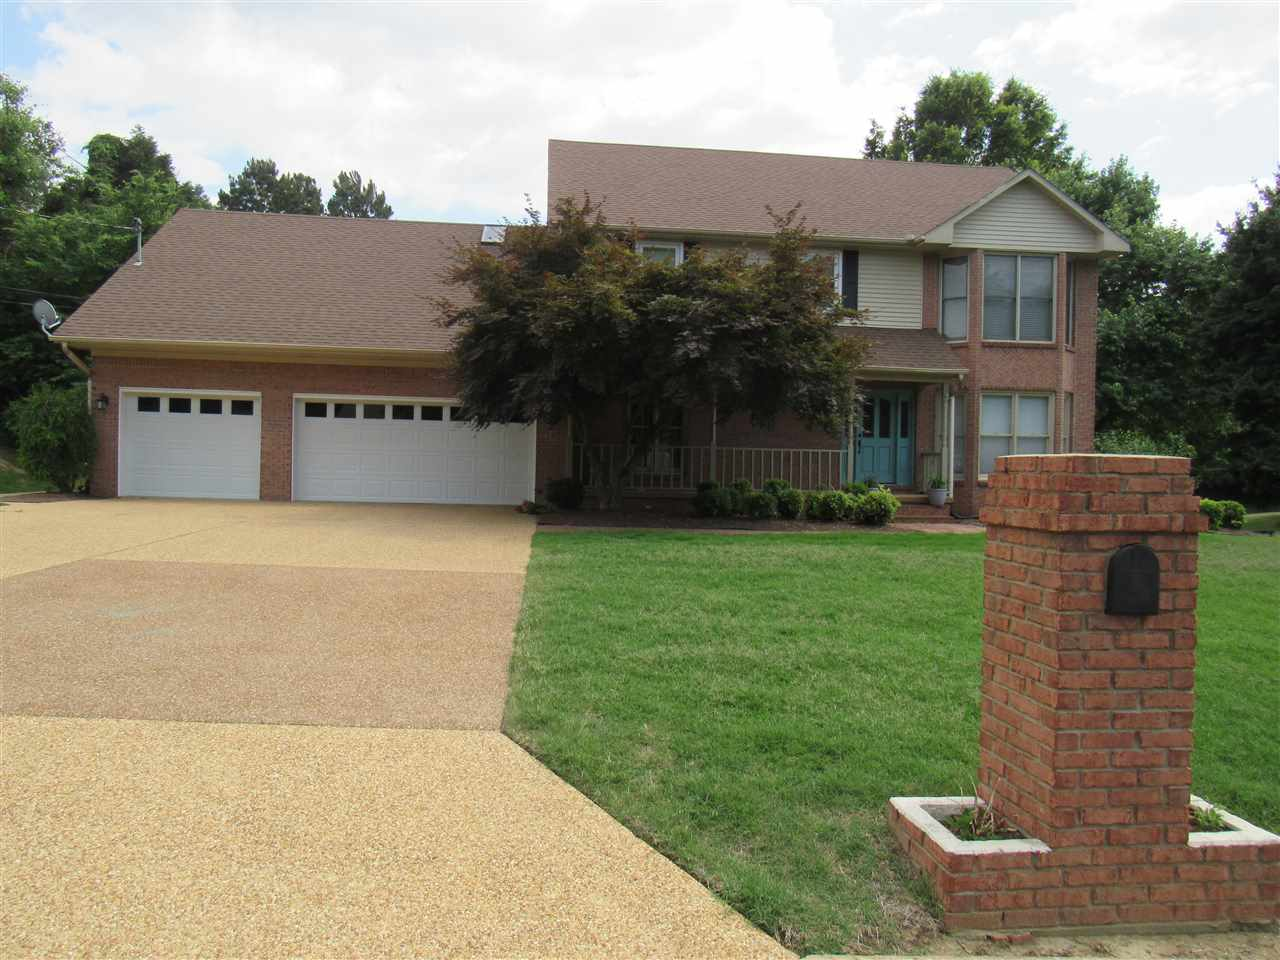 1325 Melissa Ln,Dyersburg,Tennessee 38024,5 Bedrooms Bedrooms,3 BathroomsBathrooms,Residential,1325 Melissa Ln,187302